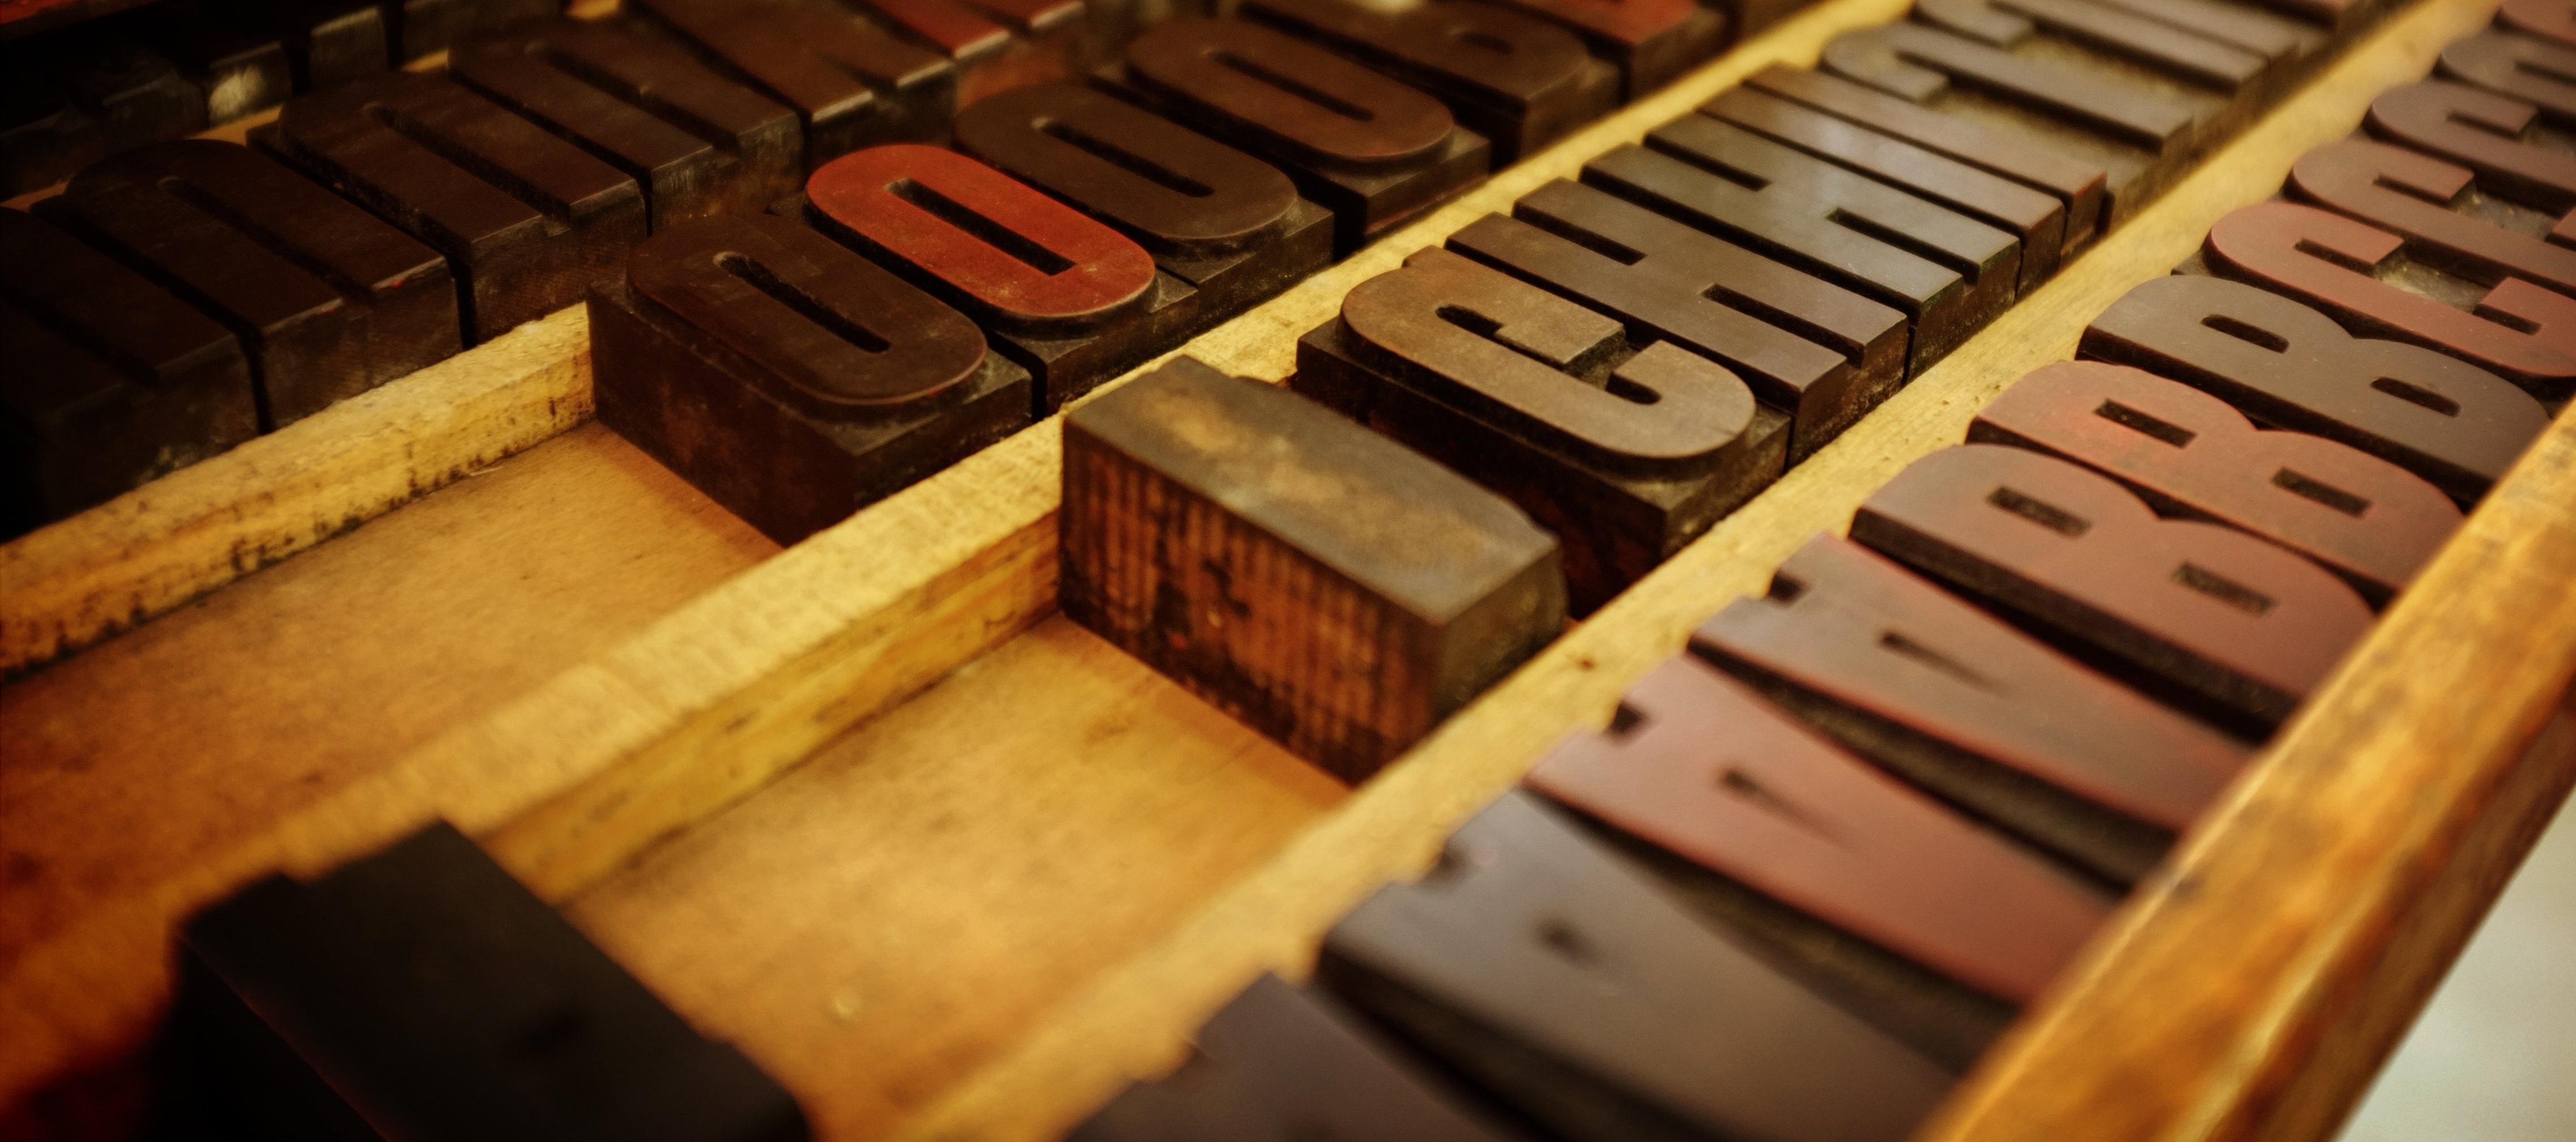 old printing press letters in wooden frame-997255-edited